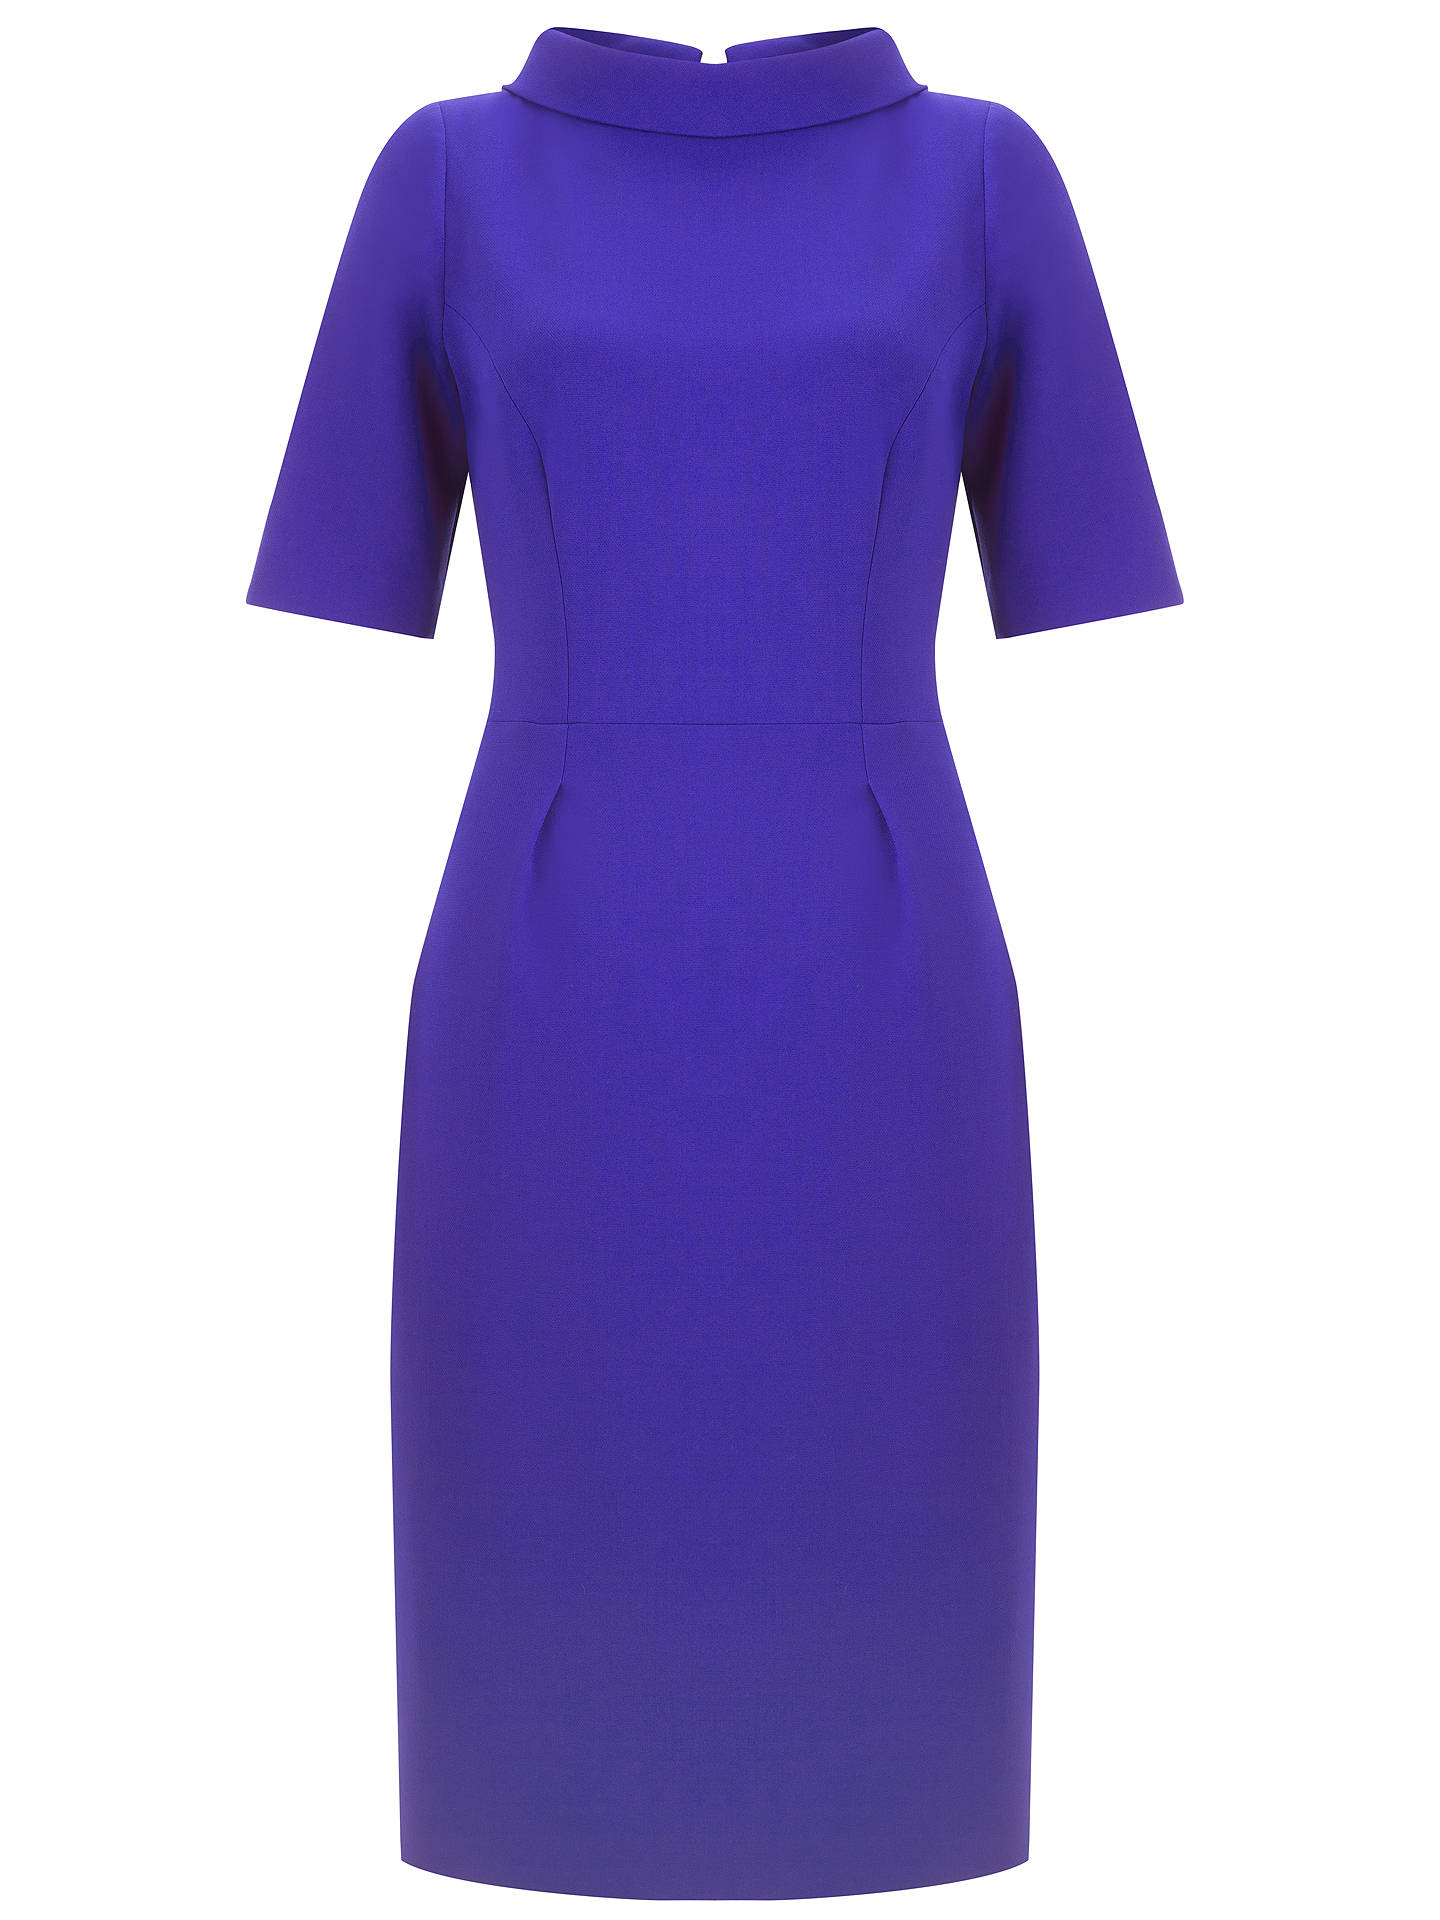 BuyBruce by Bruce Oldfield Picture Collar Dress, Cobalt, 14 Online at johnlewis.com